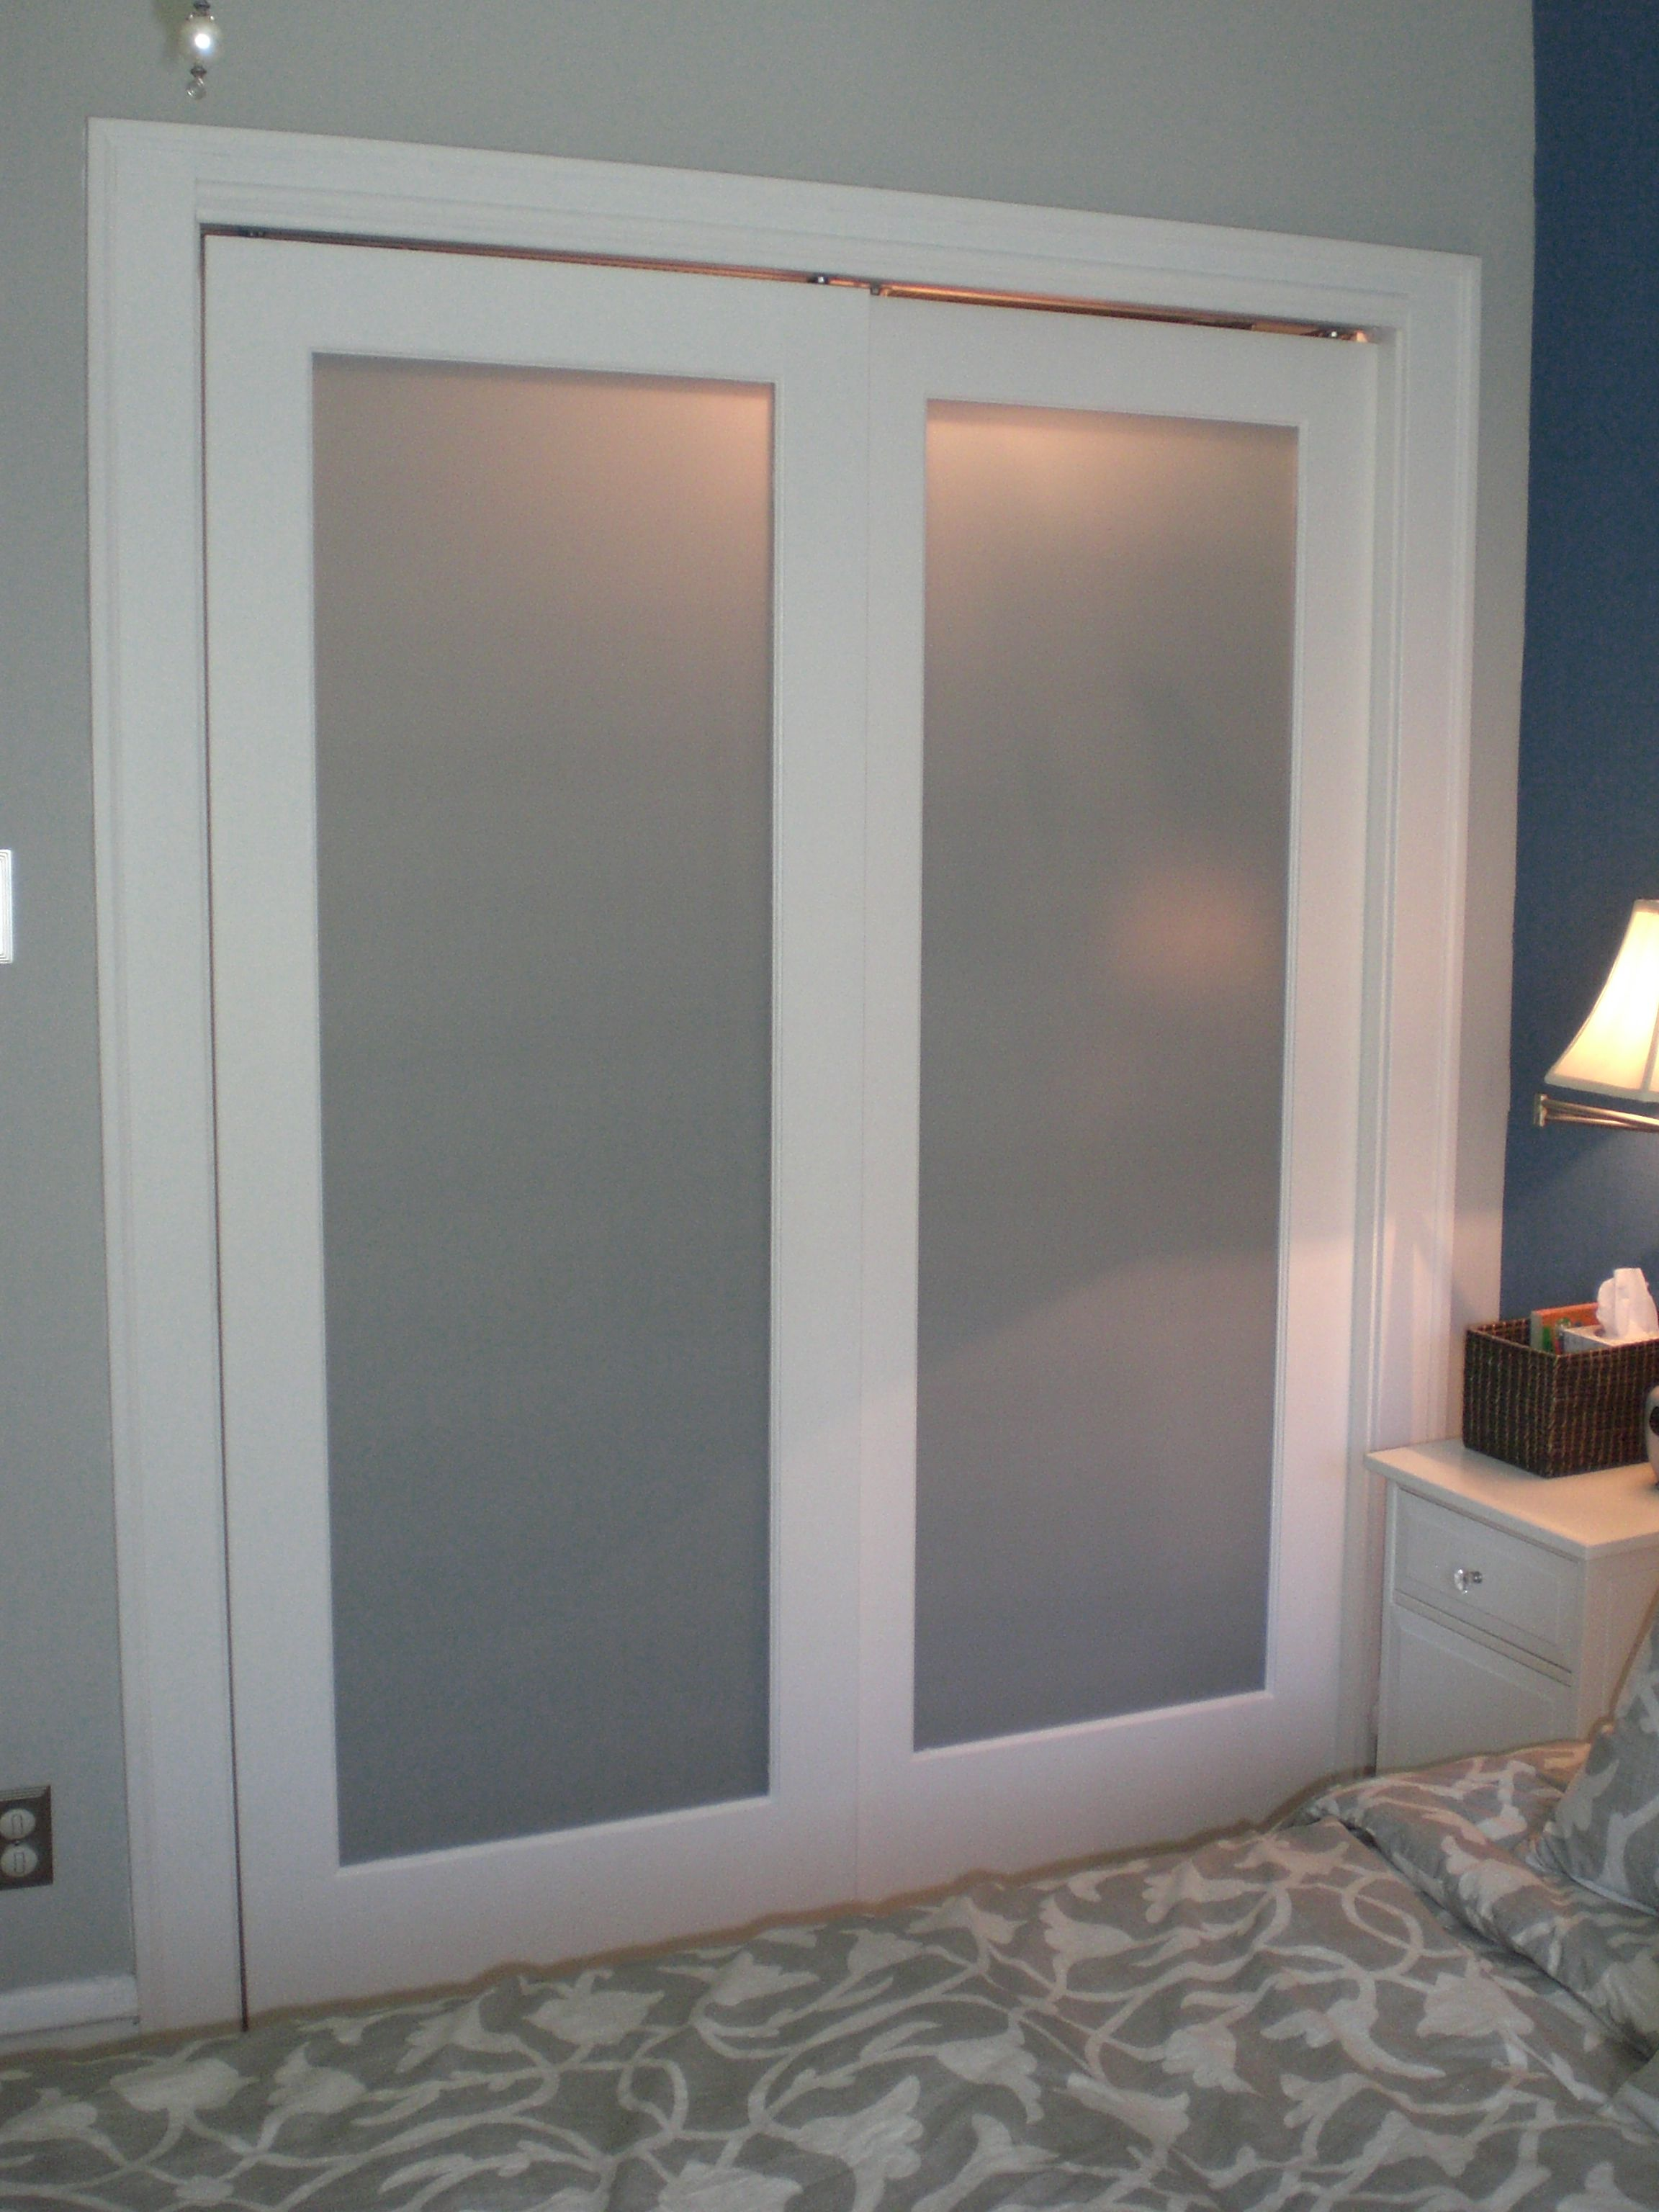 Sliding Frosted Gl Closet Doors In Master